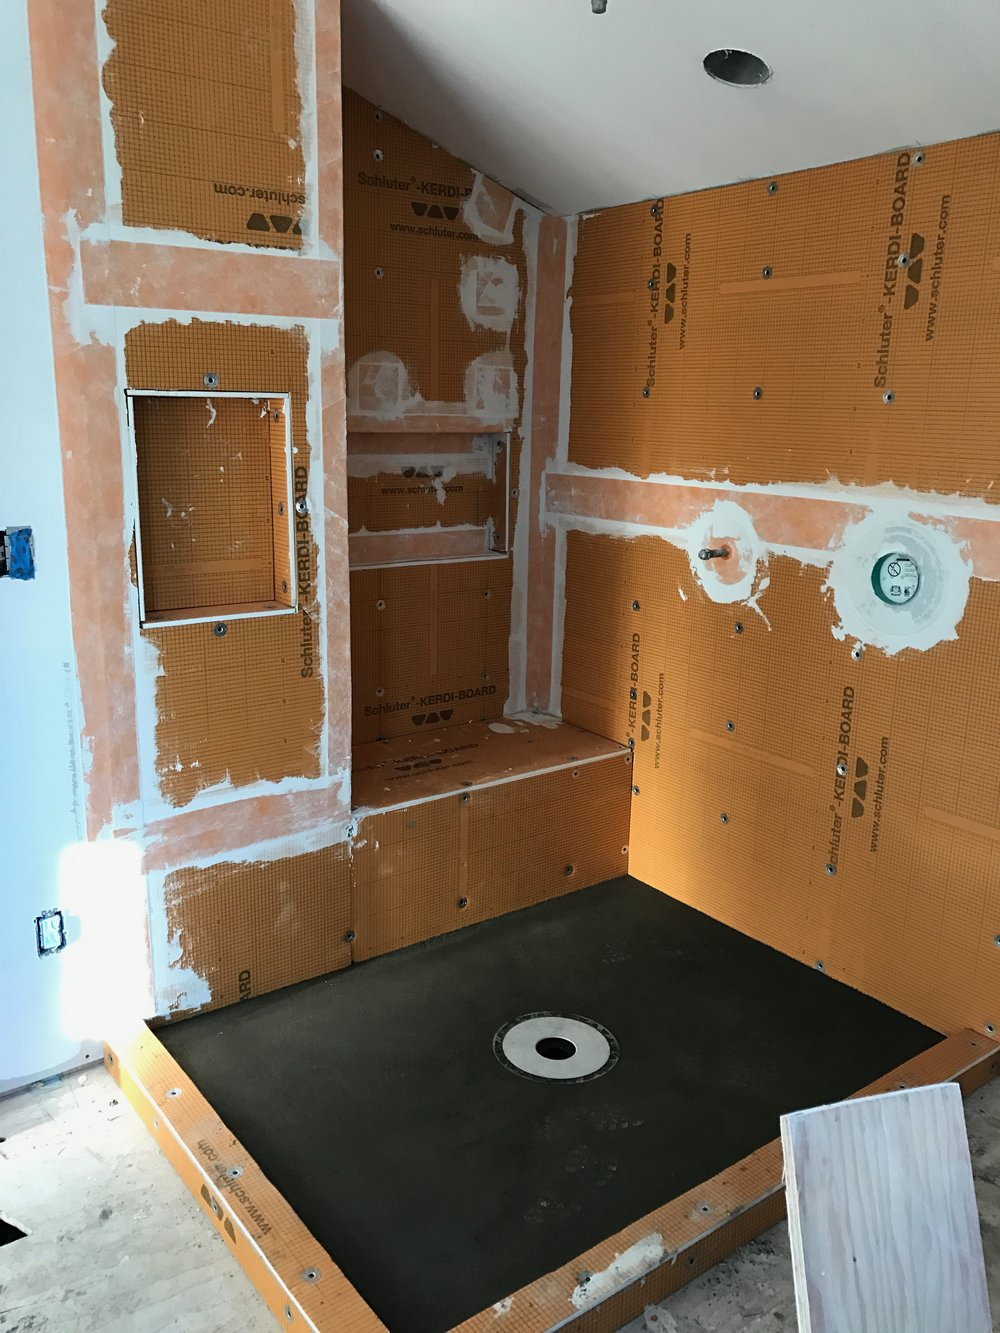 Here at OBI we are big fans of the Schluter/Kerdi waterproofing system for our tile assemblies This both allows a seamless transtion to the adjoining walls but is light and the best waterproofing possible!